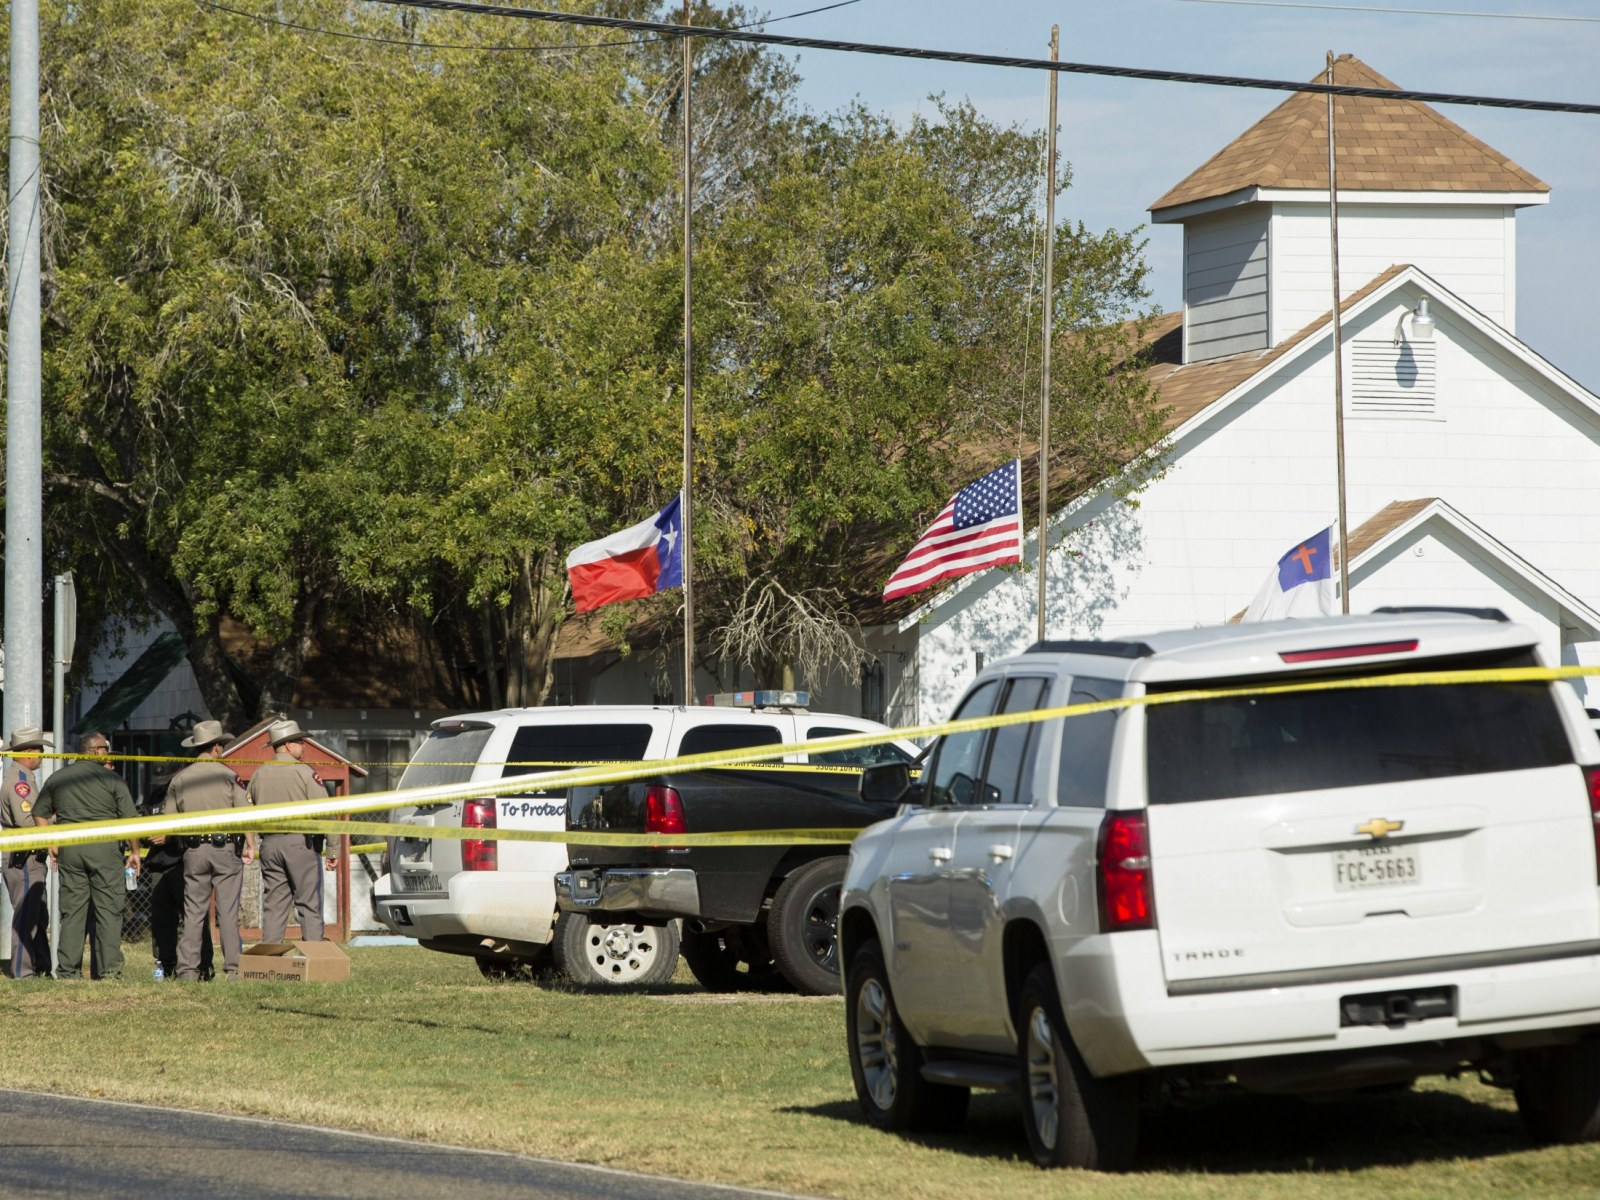 Texas Church Shooting Conspiracy Theories Say Gunman Was Muslim Convert Victims Were Actors